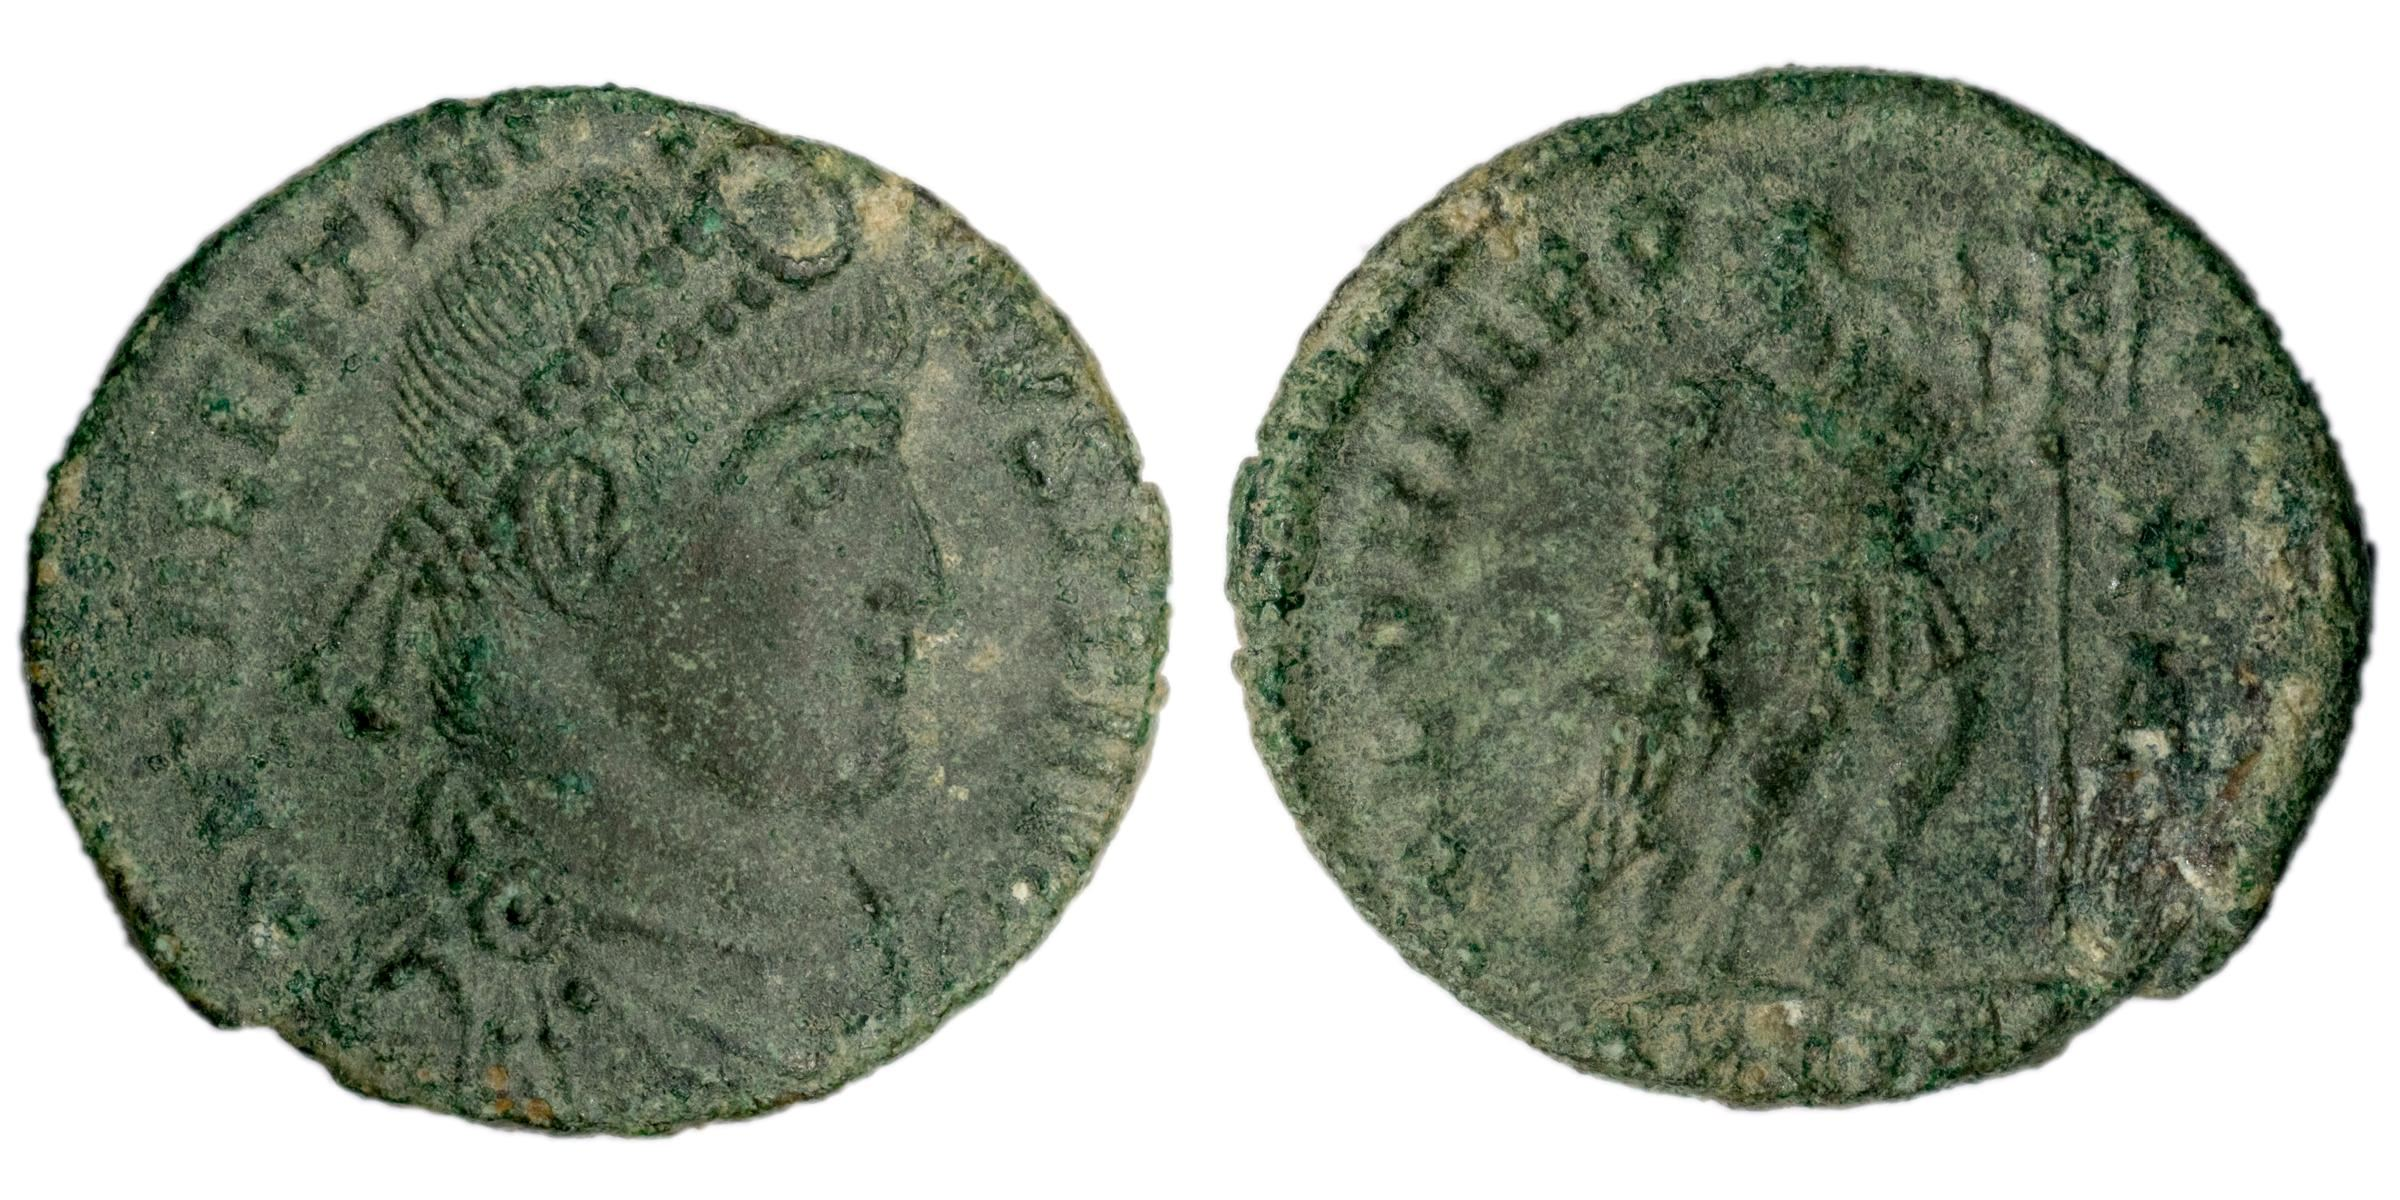 /Files/Images/Coinsite/CoinDB/Valentinianus3.jpg